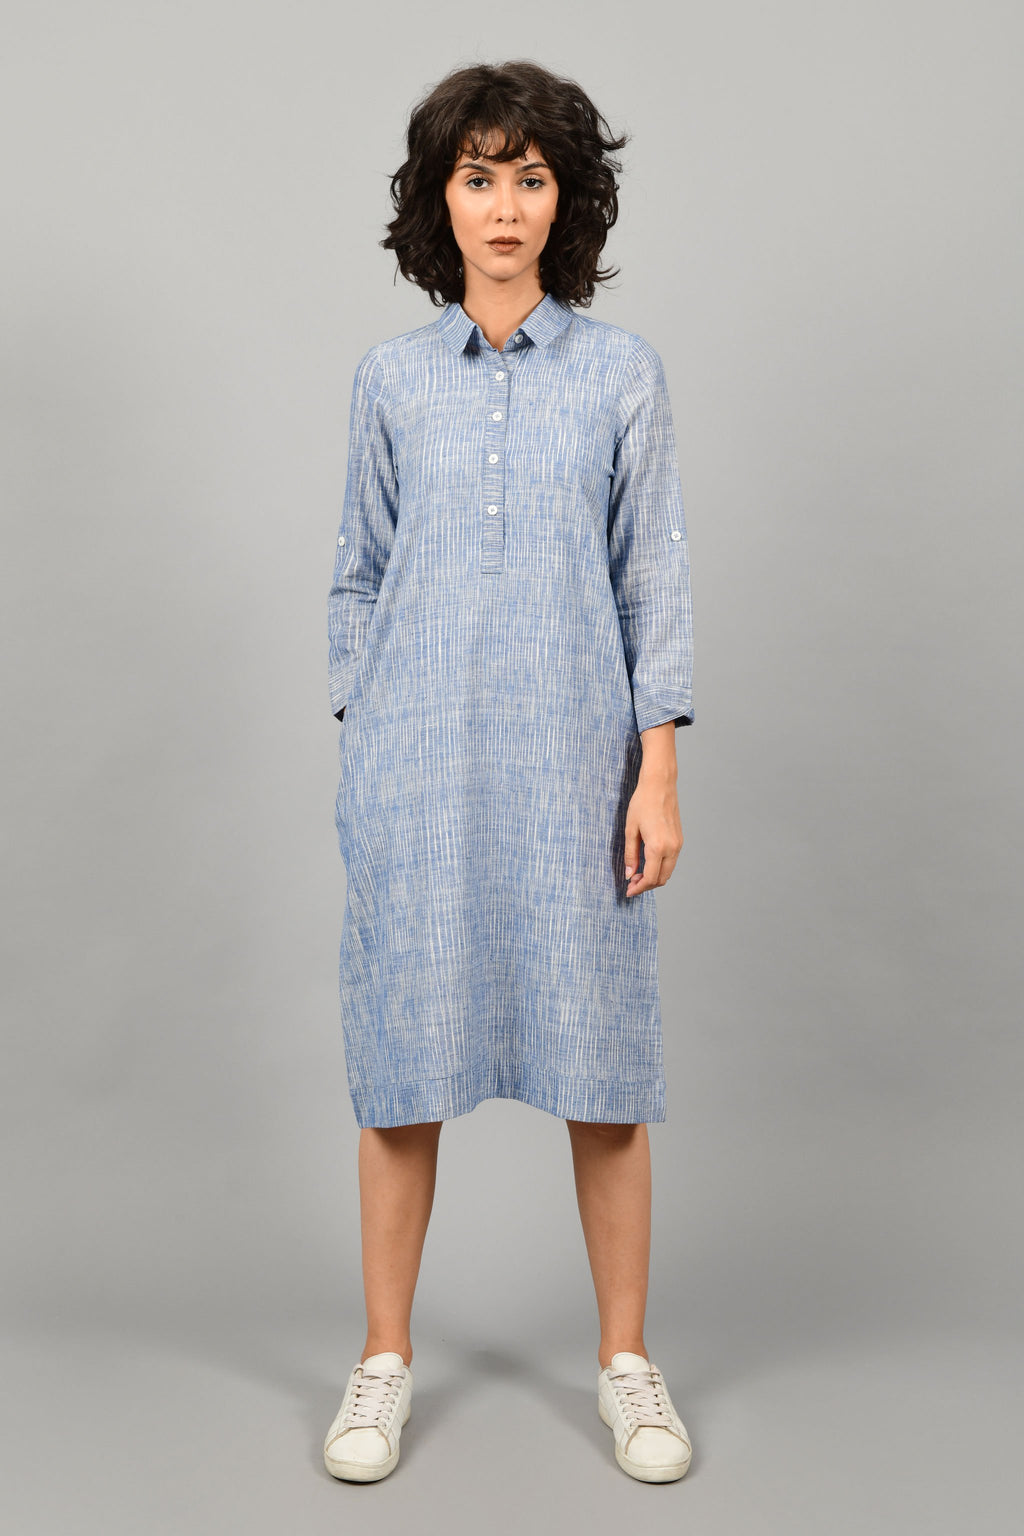 front of a model wearing a shirt dress in blue and white space dyed fine handspun handwoven khadi cotton from west bengal